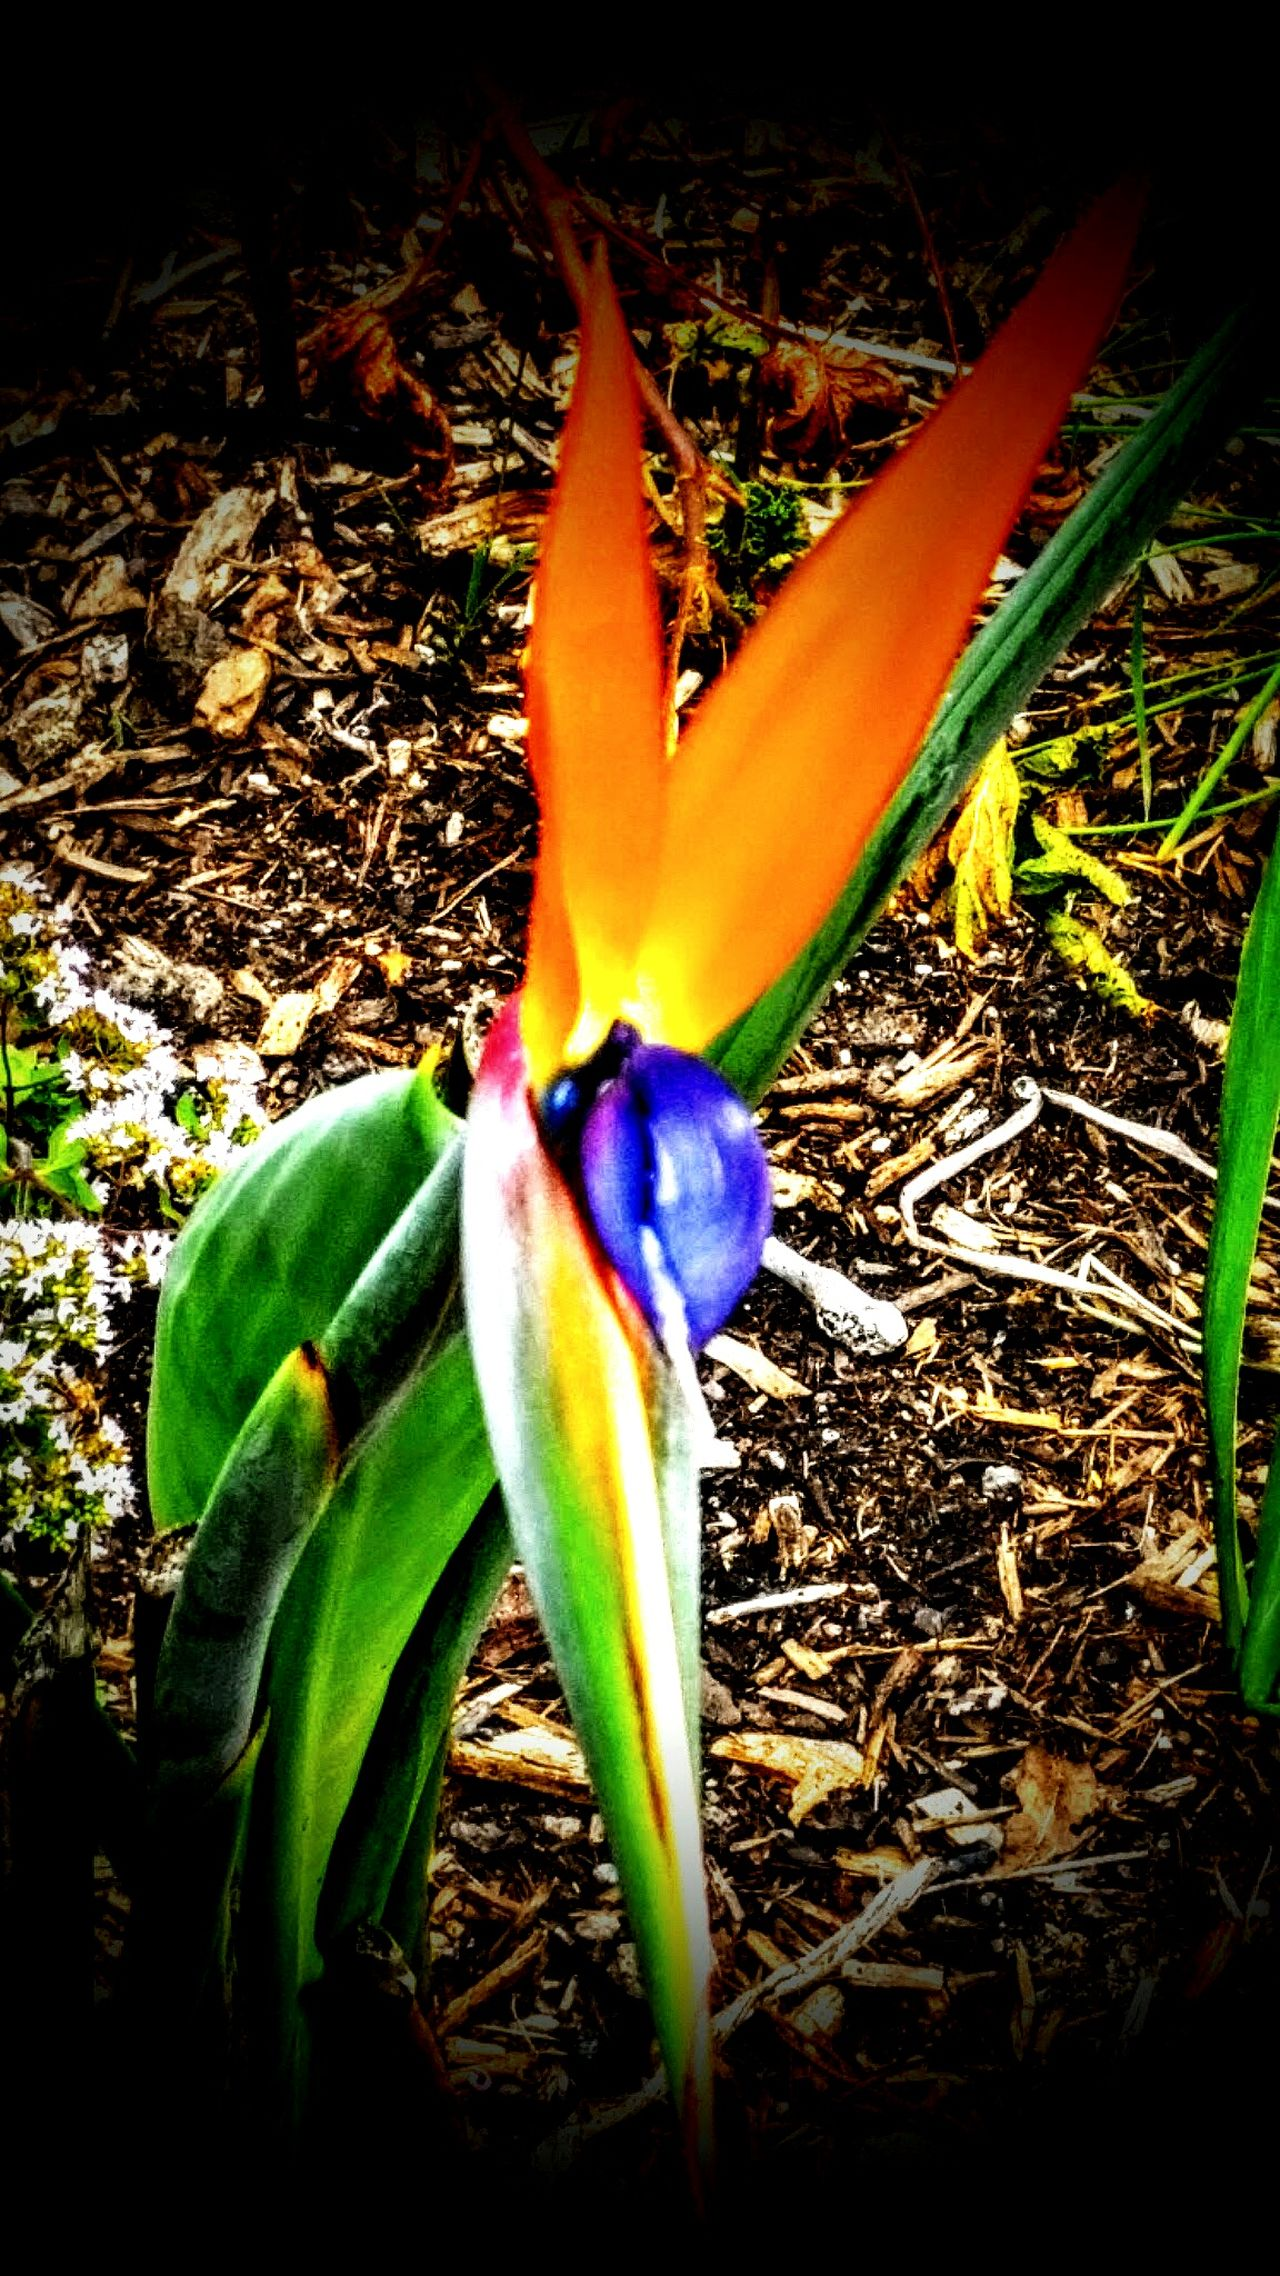 Beauty In Nature Flower Outdoors No People Bird Of Paradise - Plant Blooming Nature Photography Day Freshness Fragility